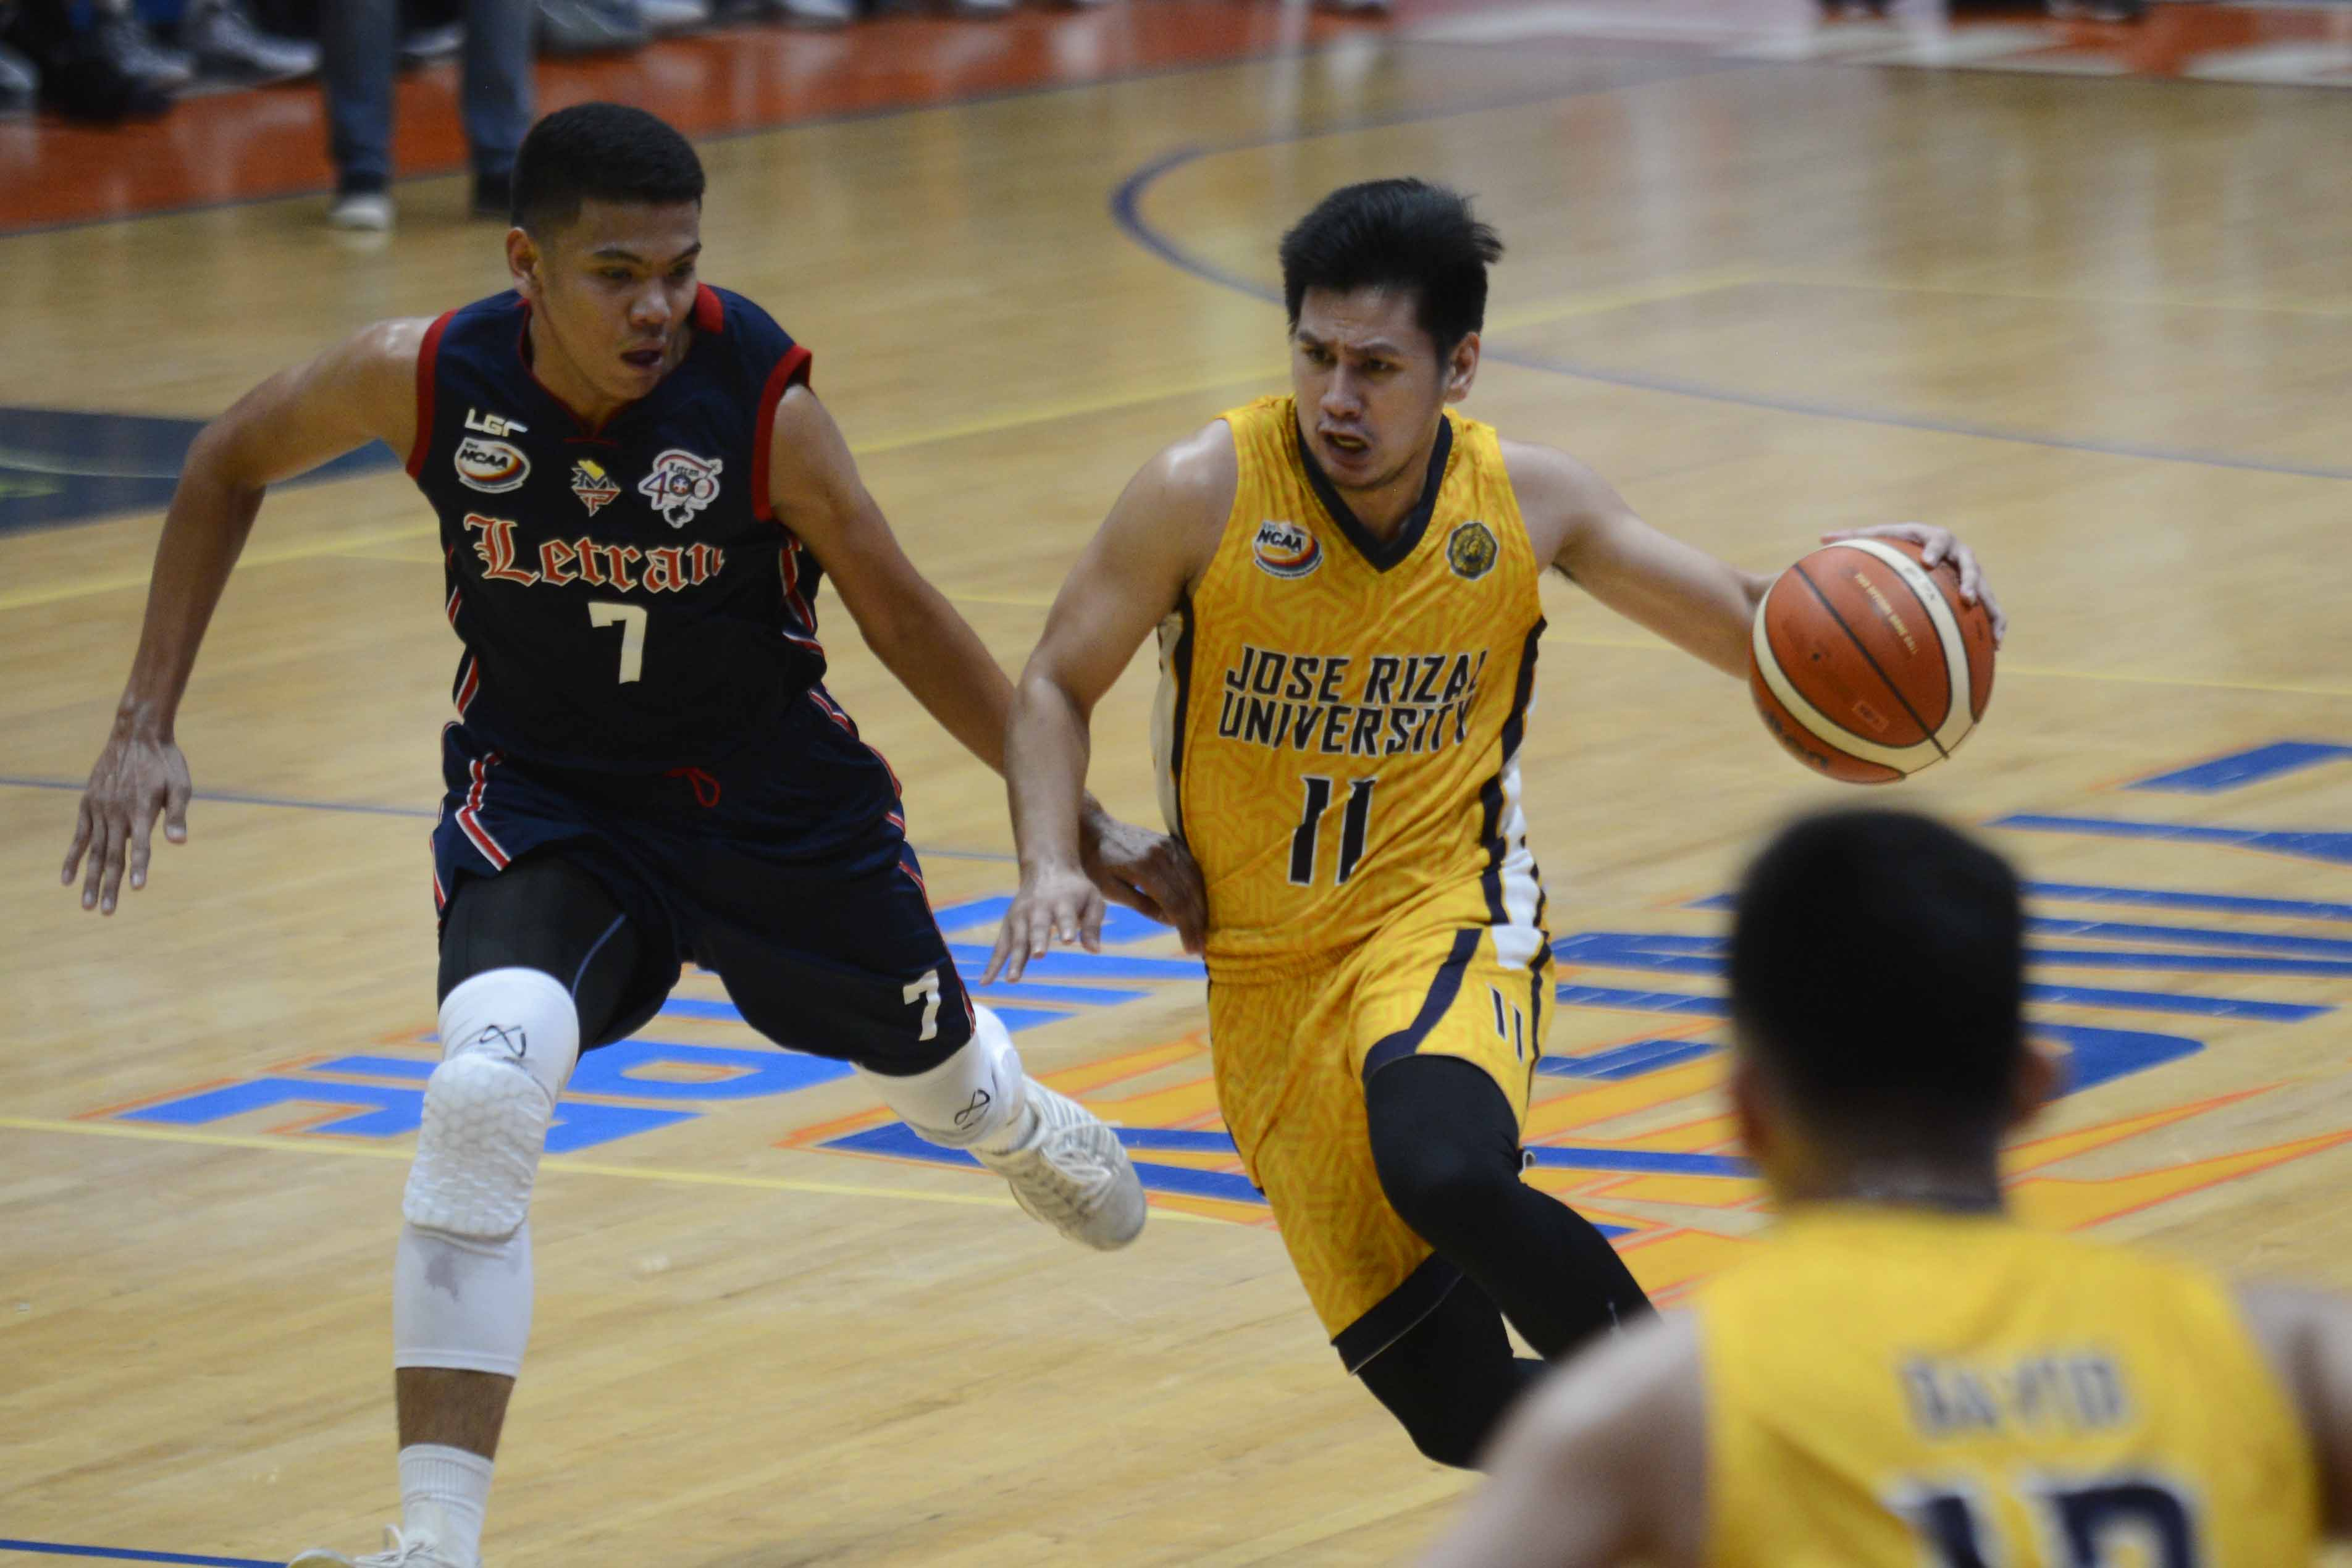 JRU rising star Jed Mendoza once scored 25 points per game